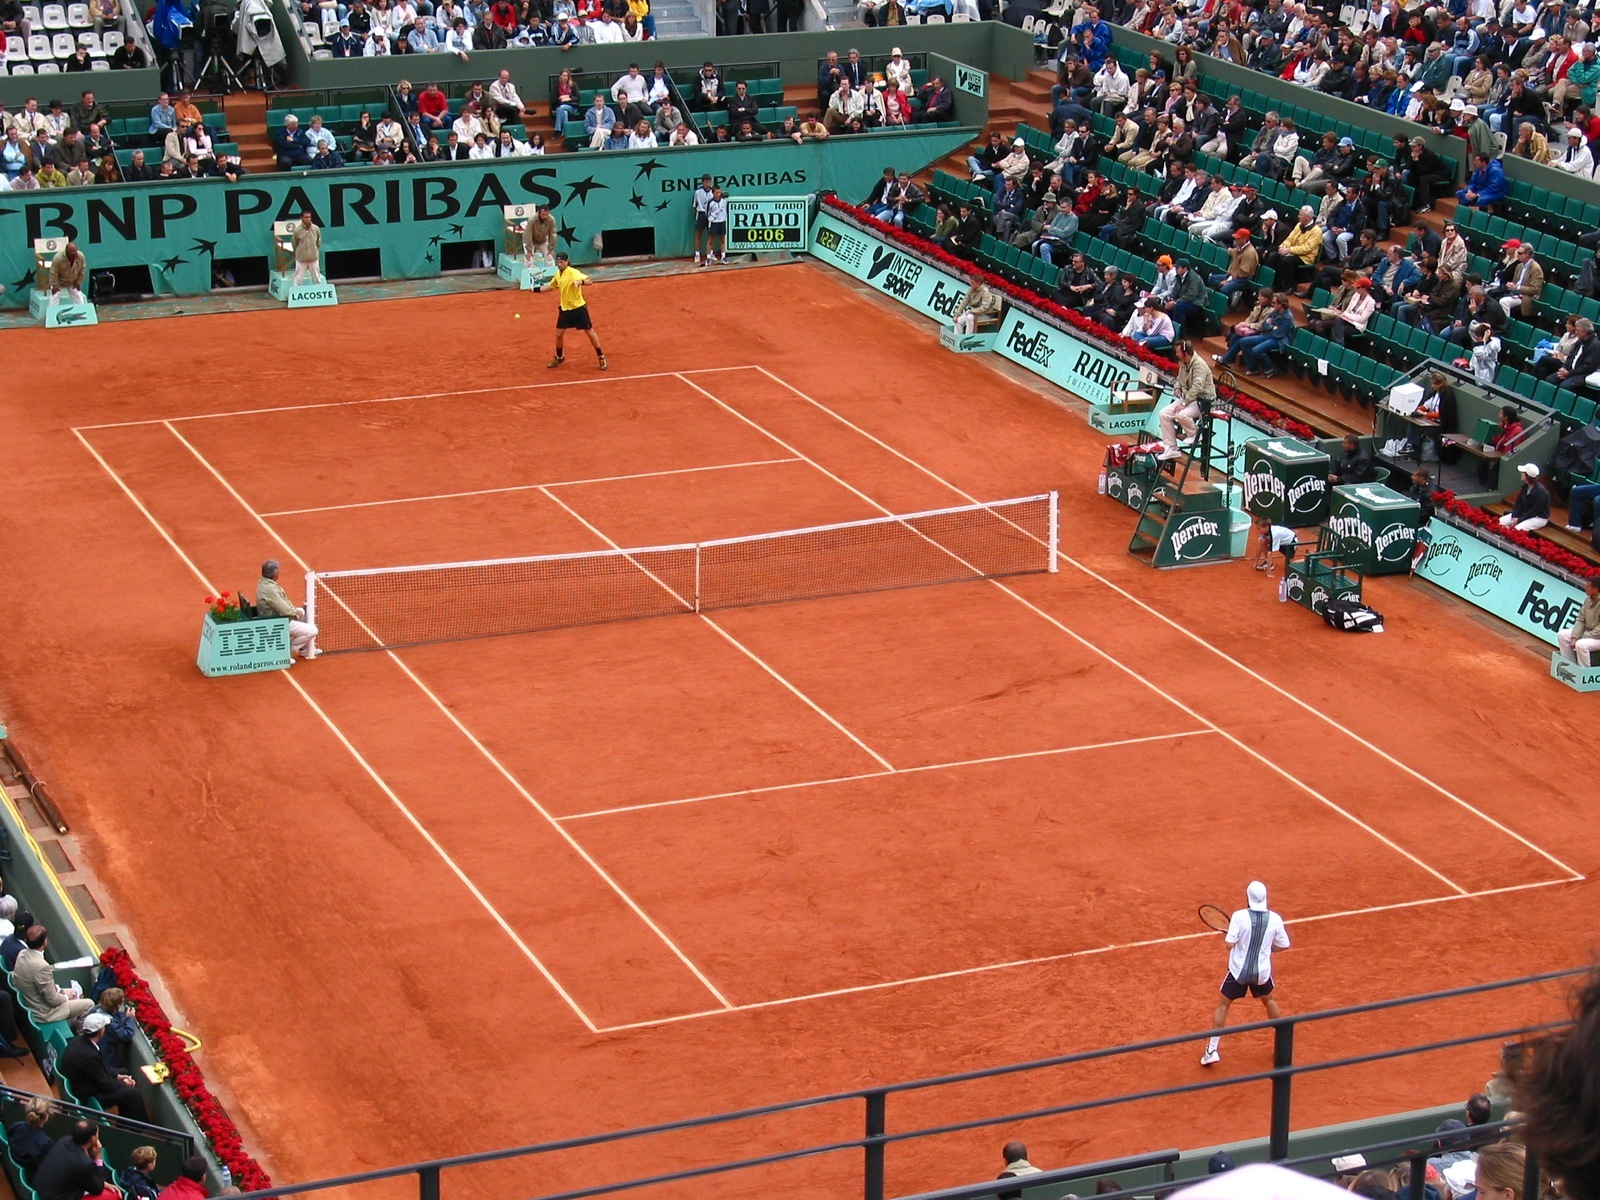 clay-courts-of-roland-garros1-1